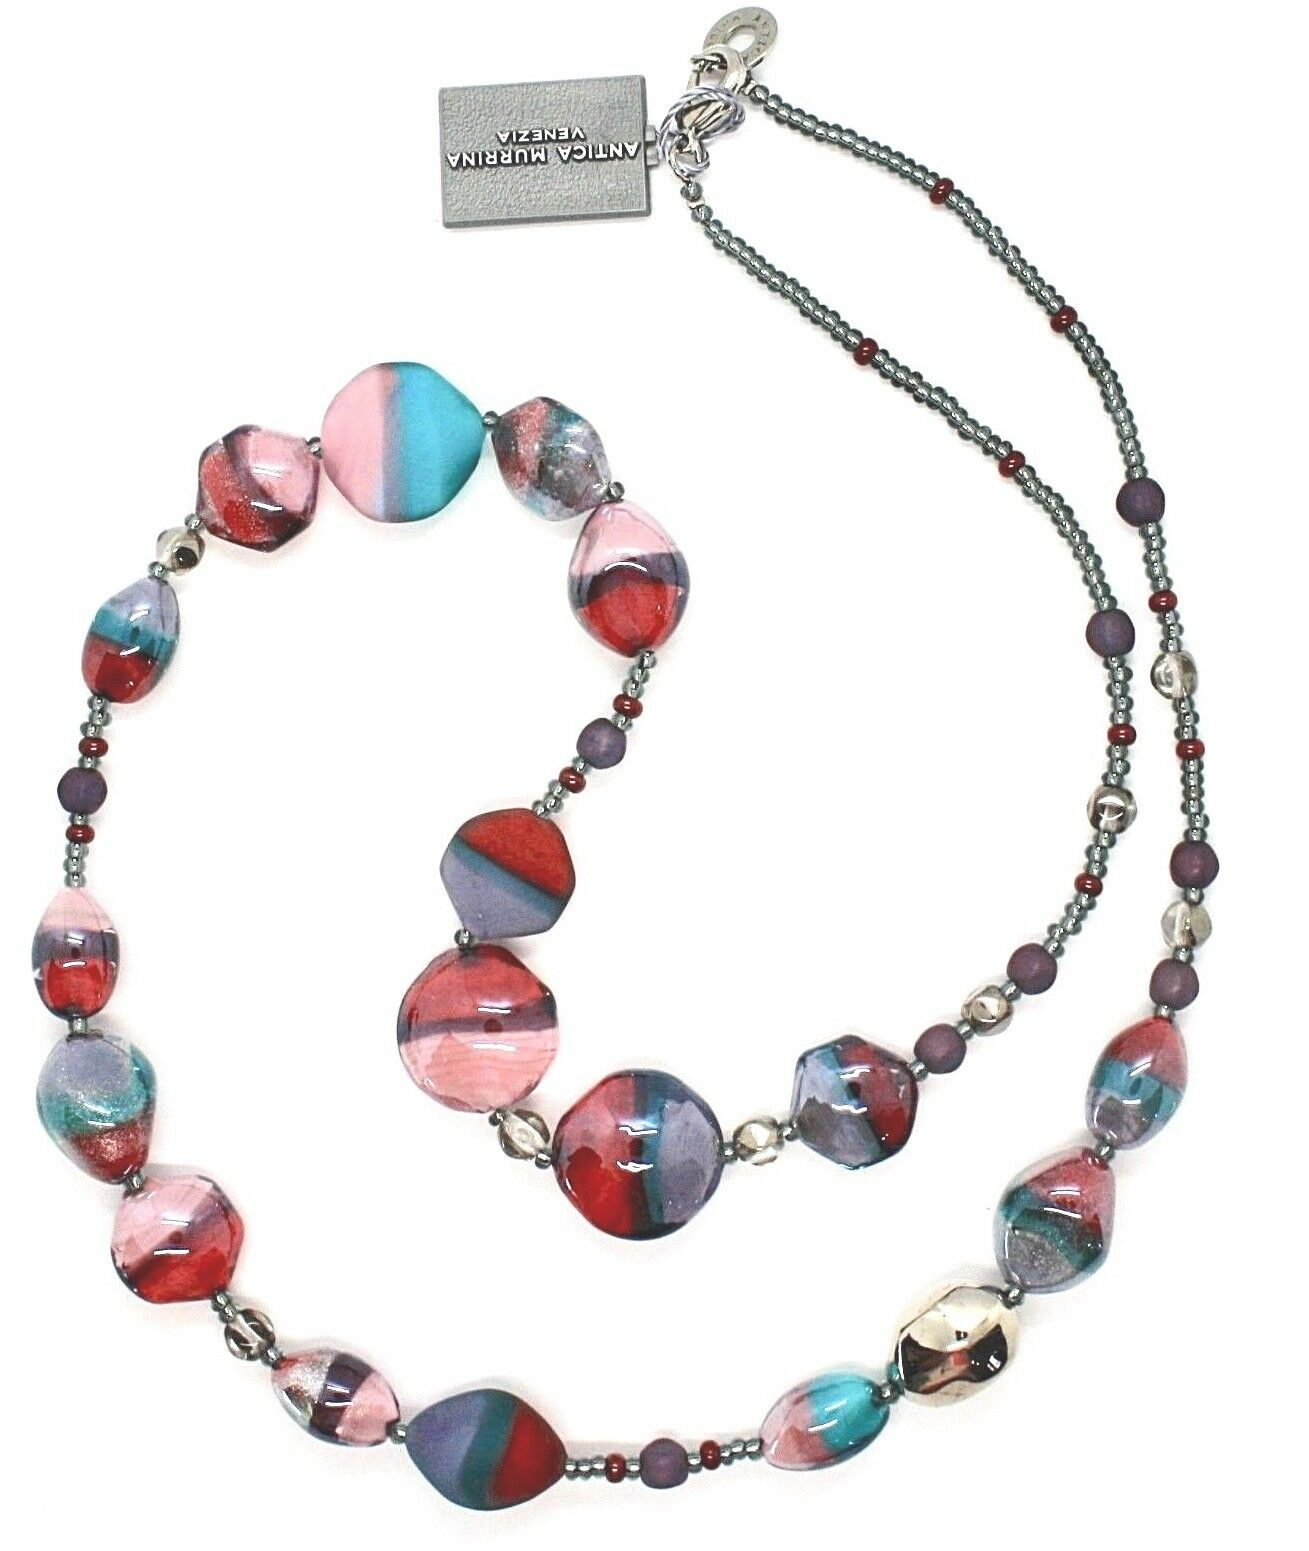 COLLIER ANTICA MURRINA VENEZIA AVEC VERRE DE MURANO purple blue pink CO979A04